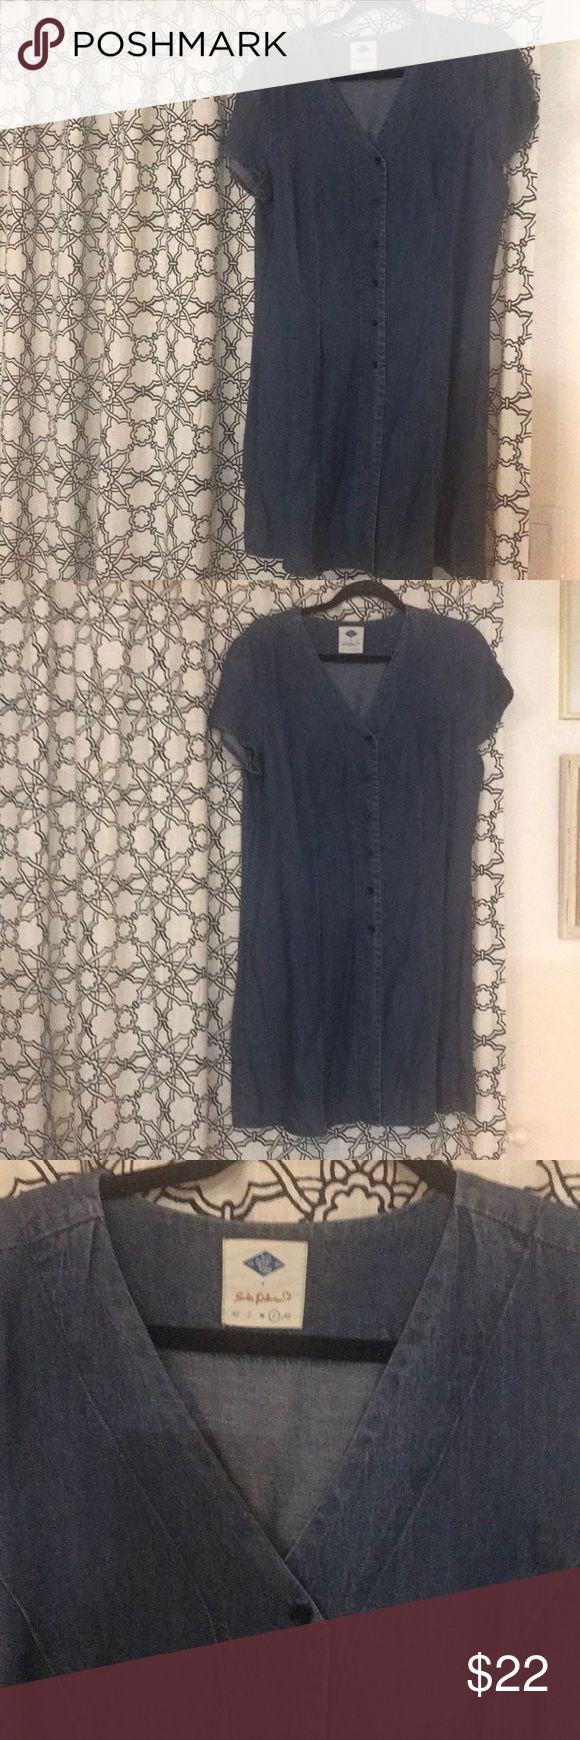 Sadie Robertson Denim Dress! Sadie Robertson Denim Dress! This is SO cutr and on trend. You can add so many fun accessories to this staple piece! sadie Robertson Dresses